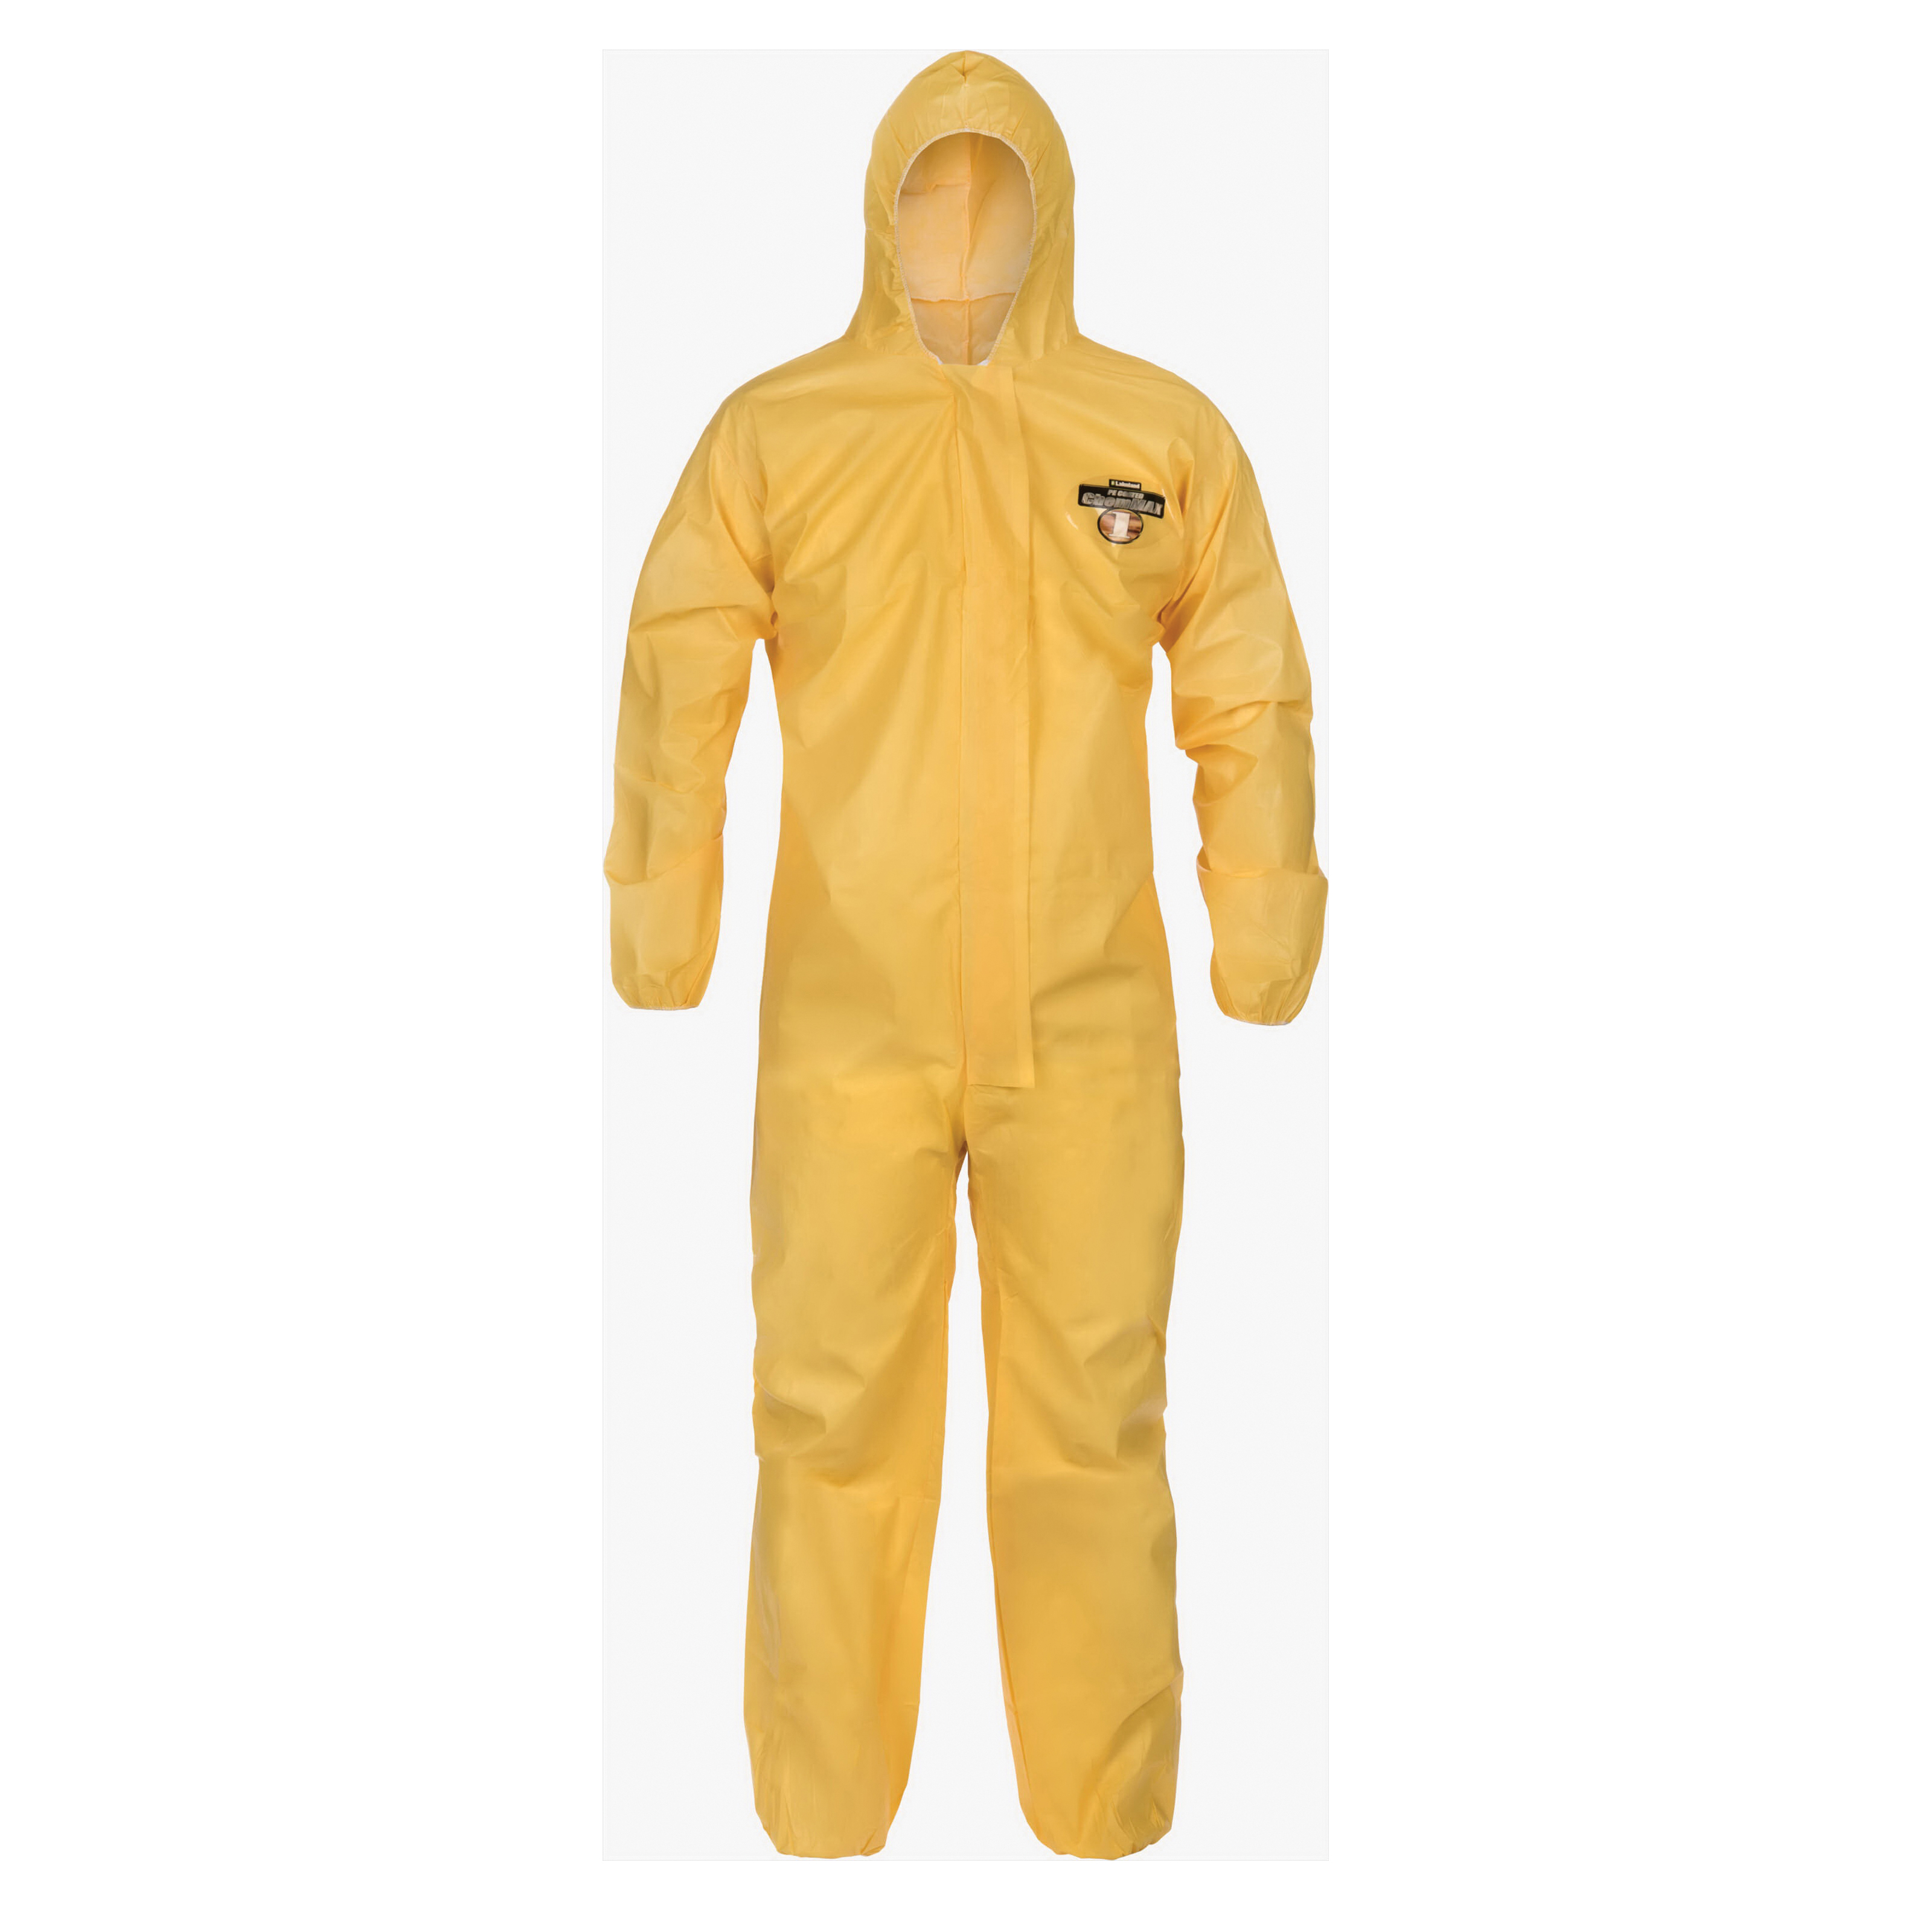 Lakeland® C1S417Y-MD Protective Coverall With Collar, M, Yellow, ChemMax® 1 (Polyethylene Barrier Film/Non-Woven Filament), 40 to 42 in Chest, 29 in L Inseam